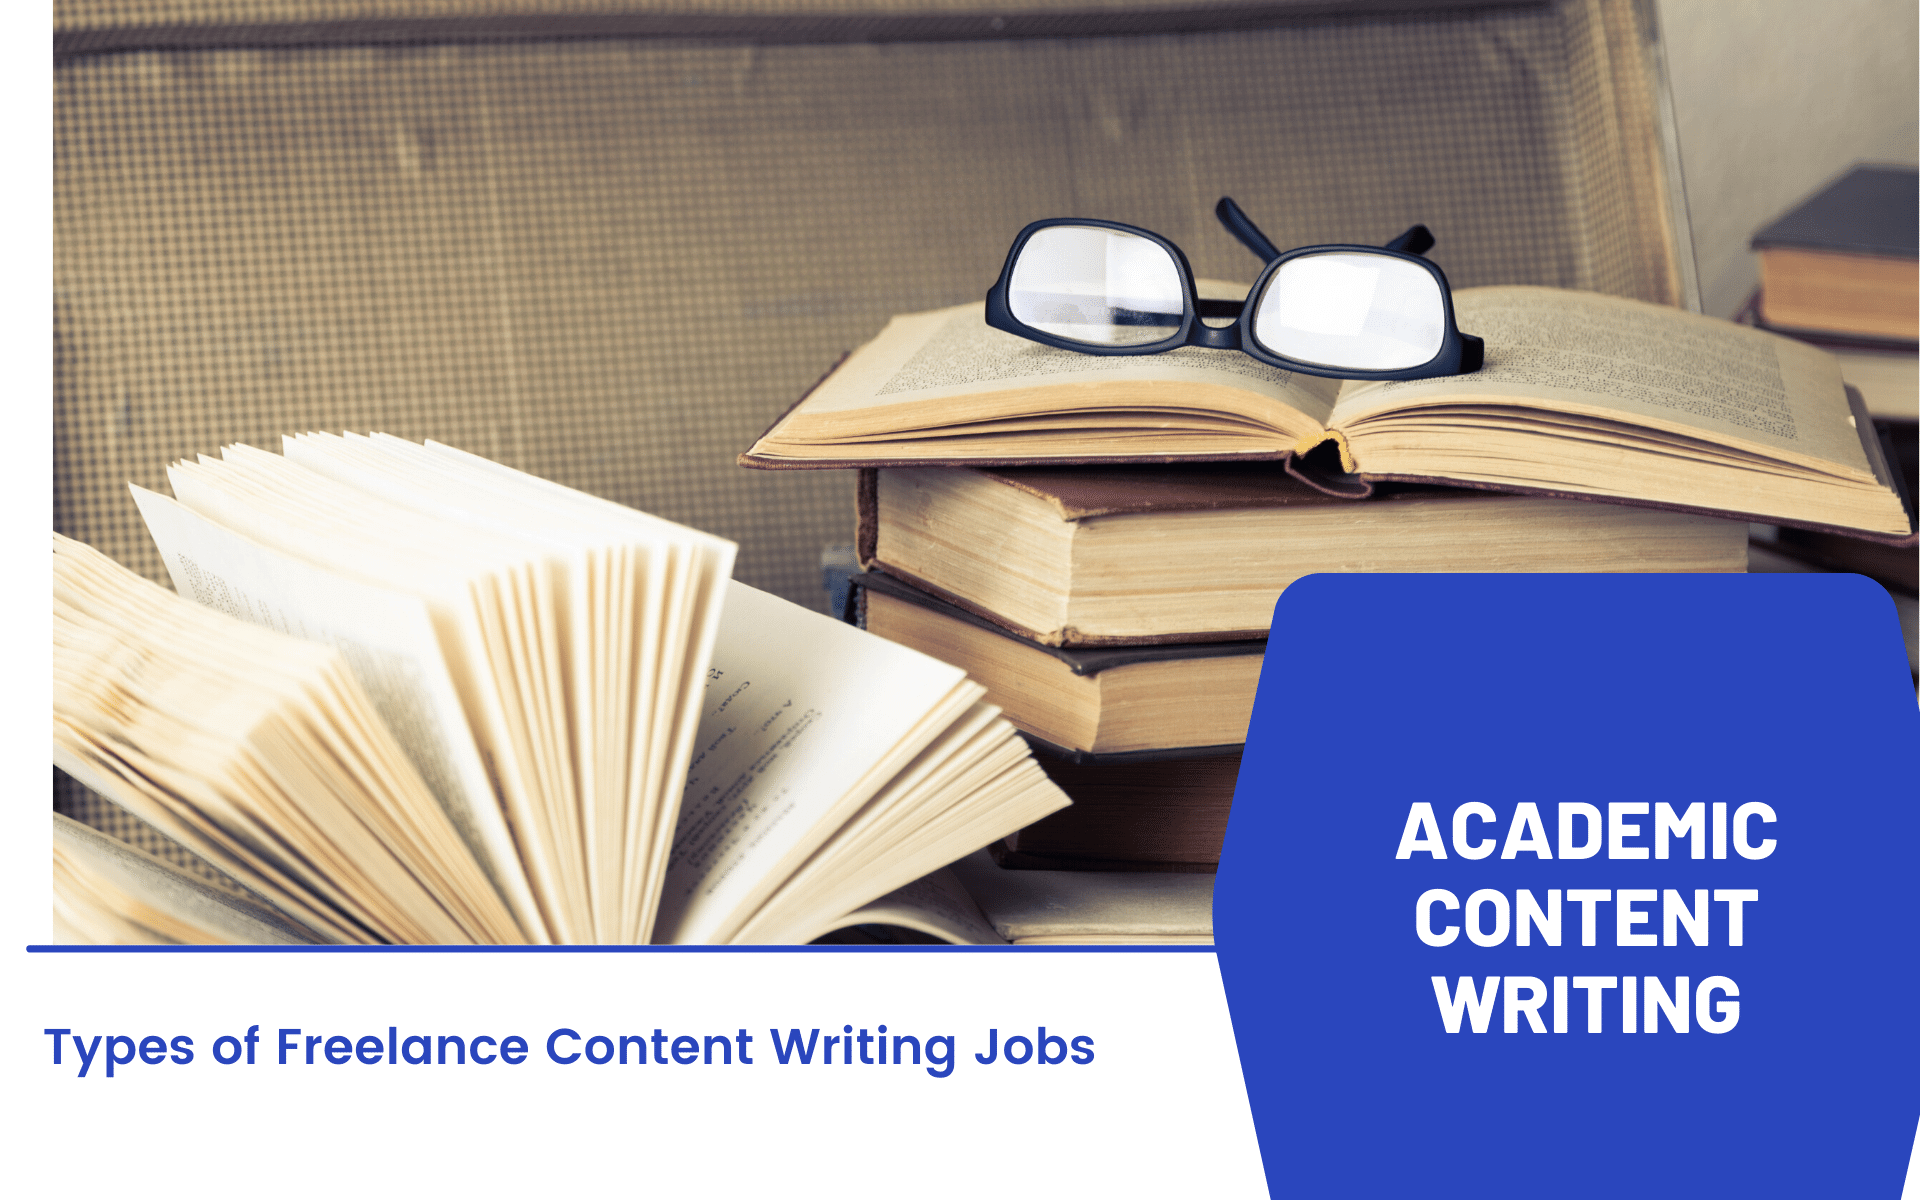 Academic Content Writing